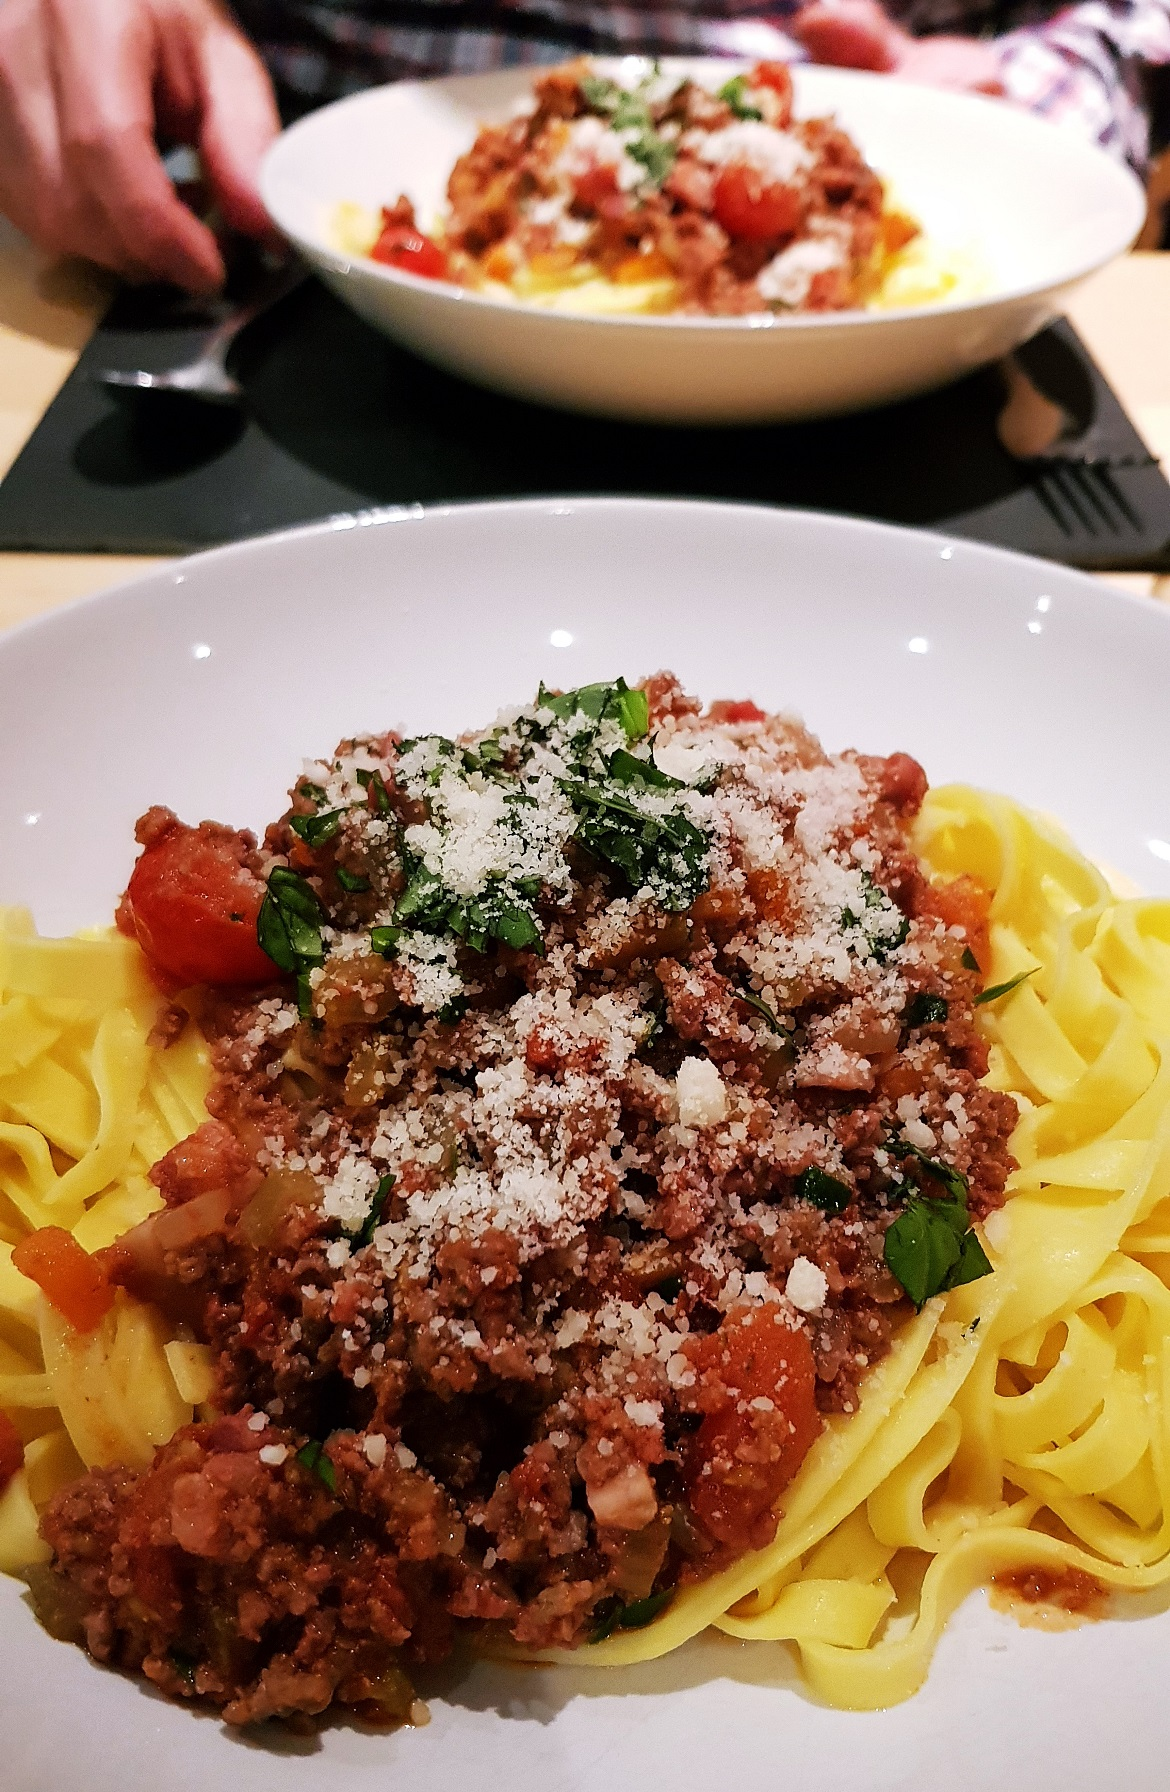 Tagliatelle al ragu, recipe by BeckyBecky Blogs